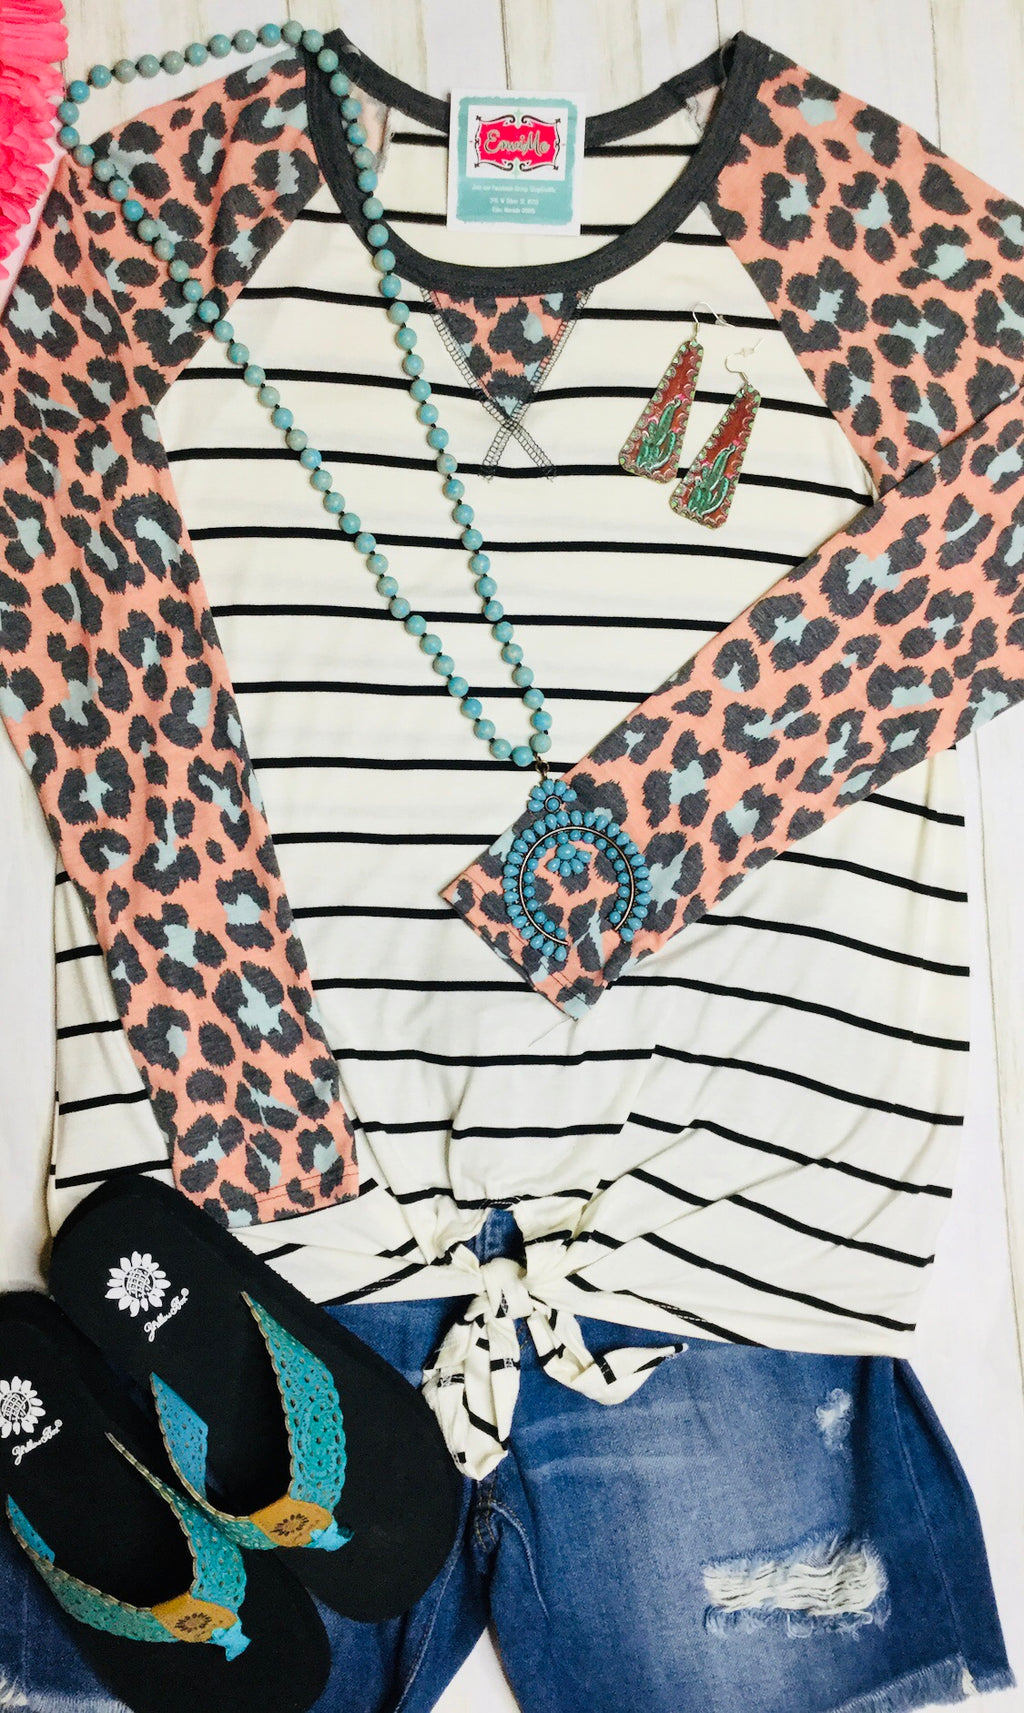 The Pink Cheetah Stripe Knot Top